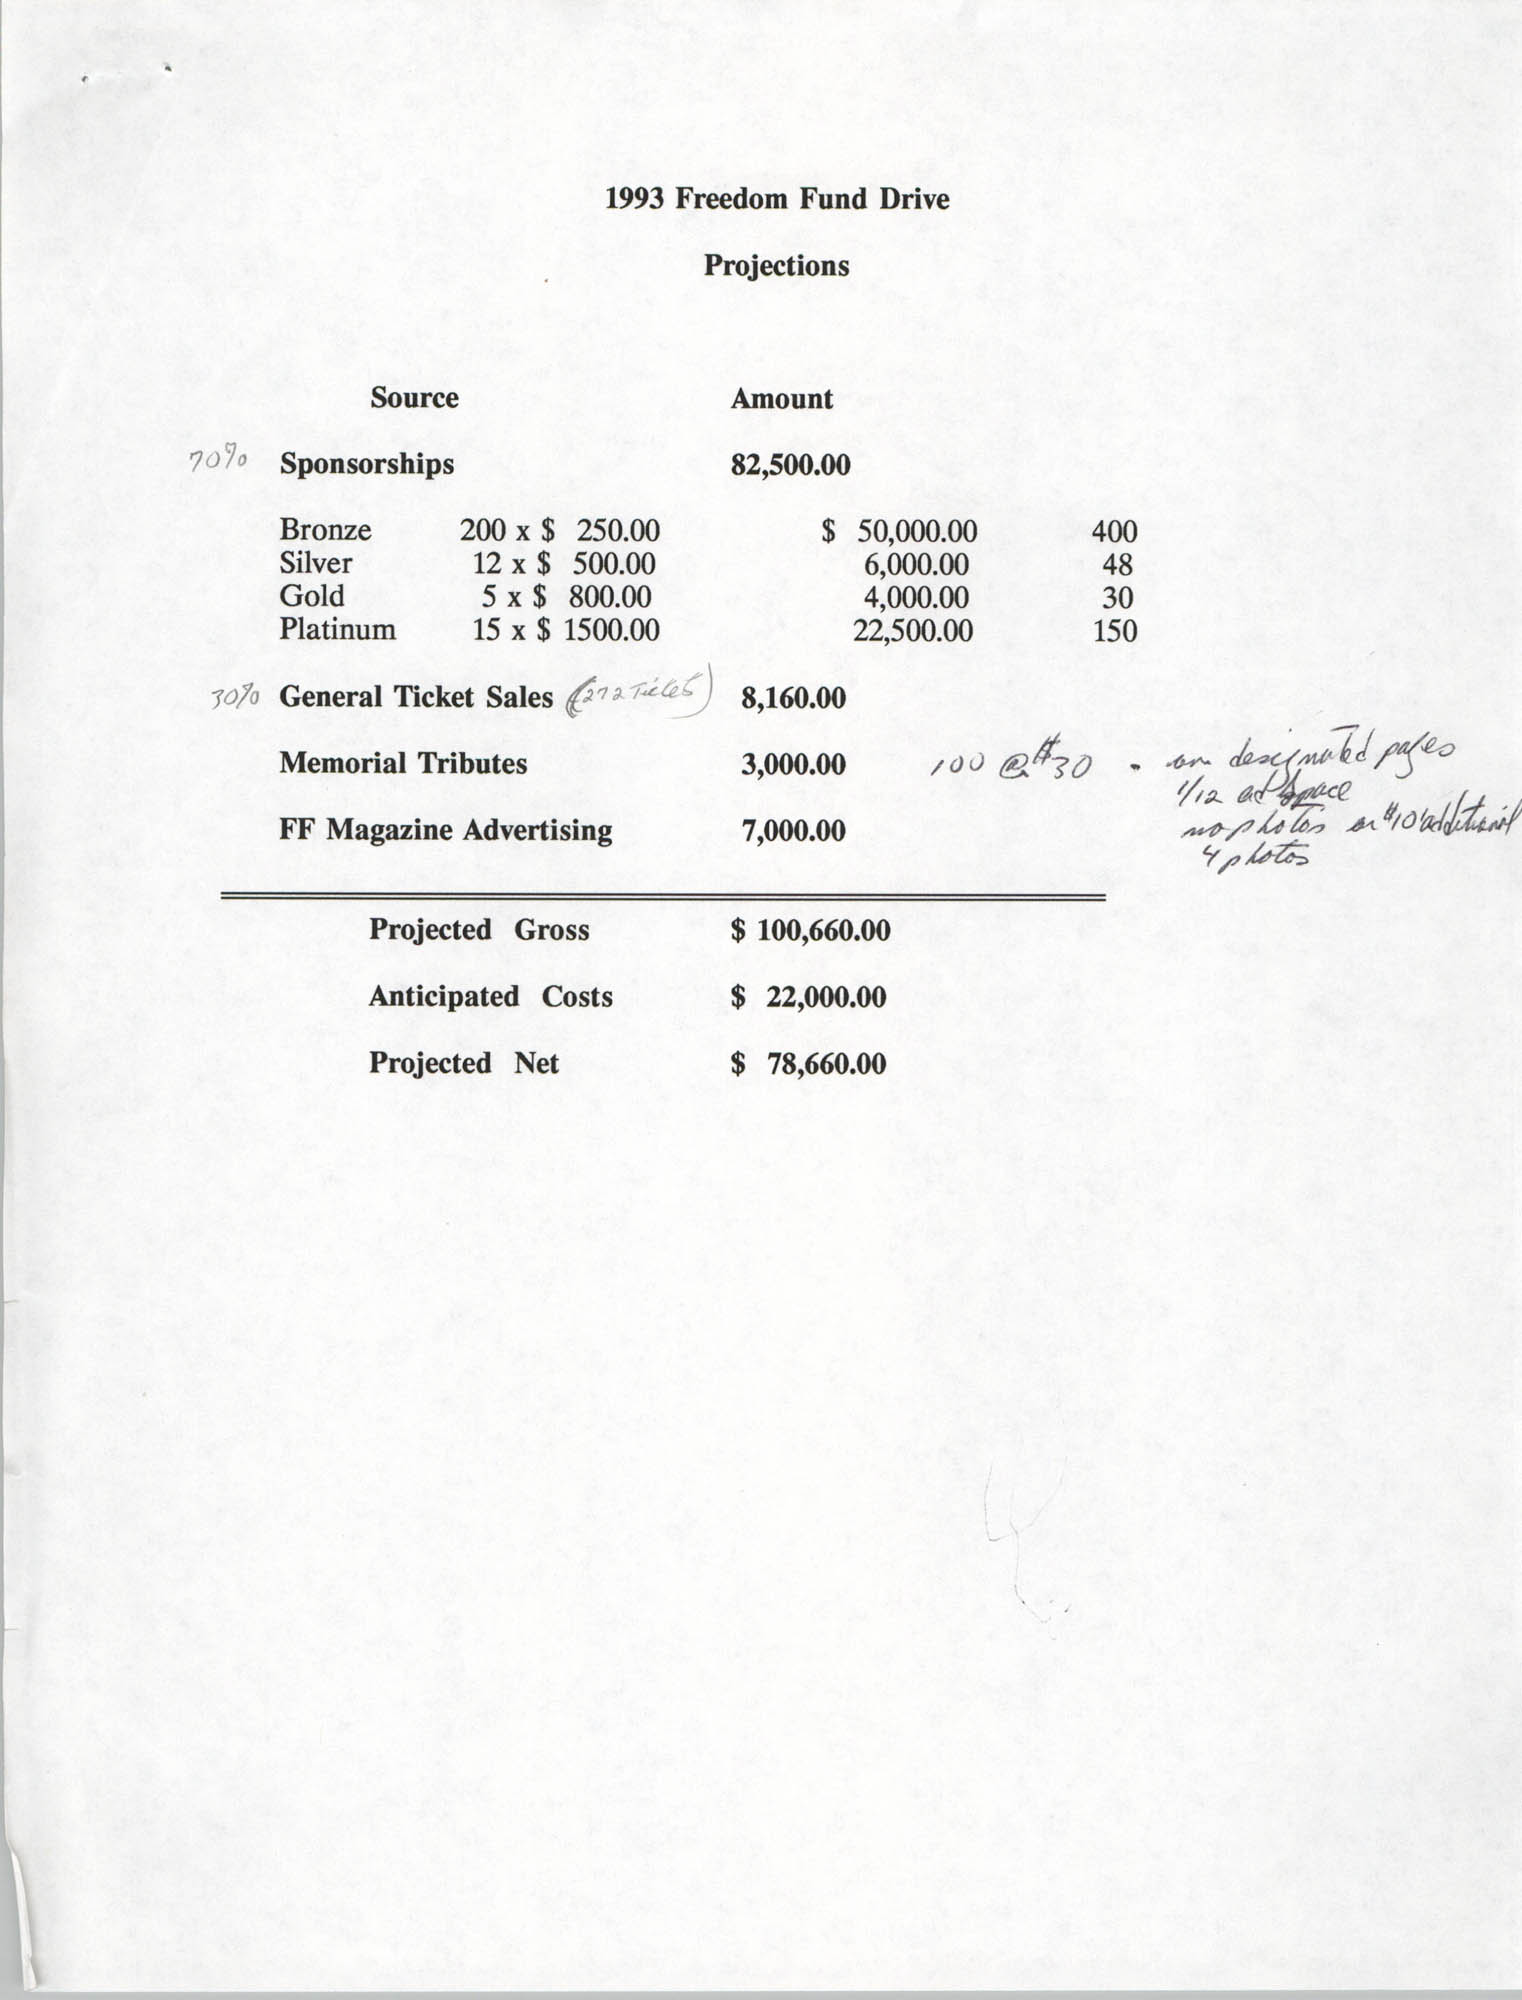 1993 Freedom Fund Drive Projections